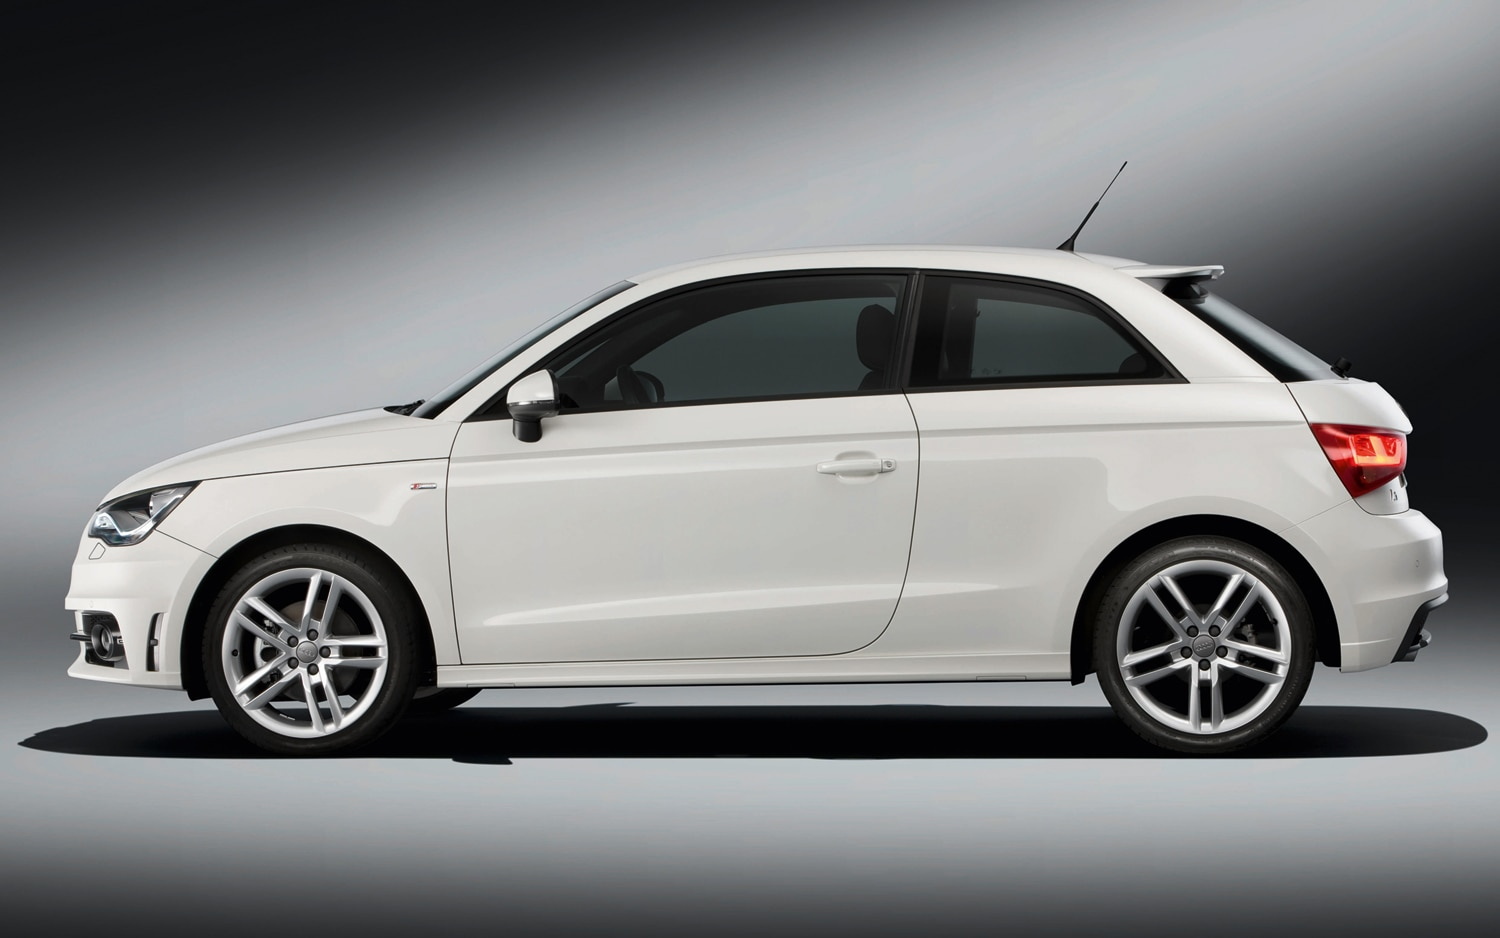 Audi A1 Left Side View